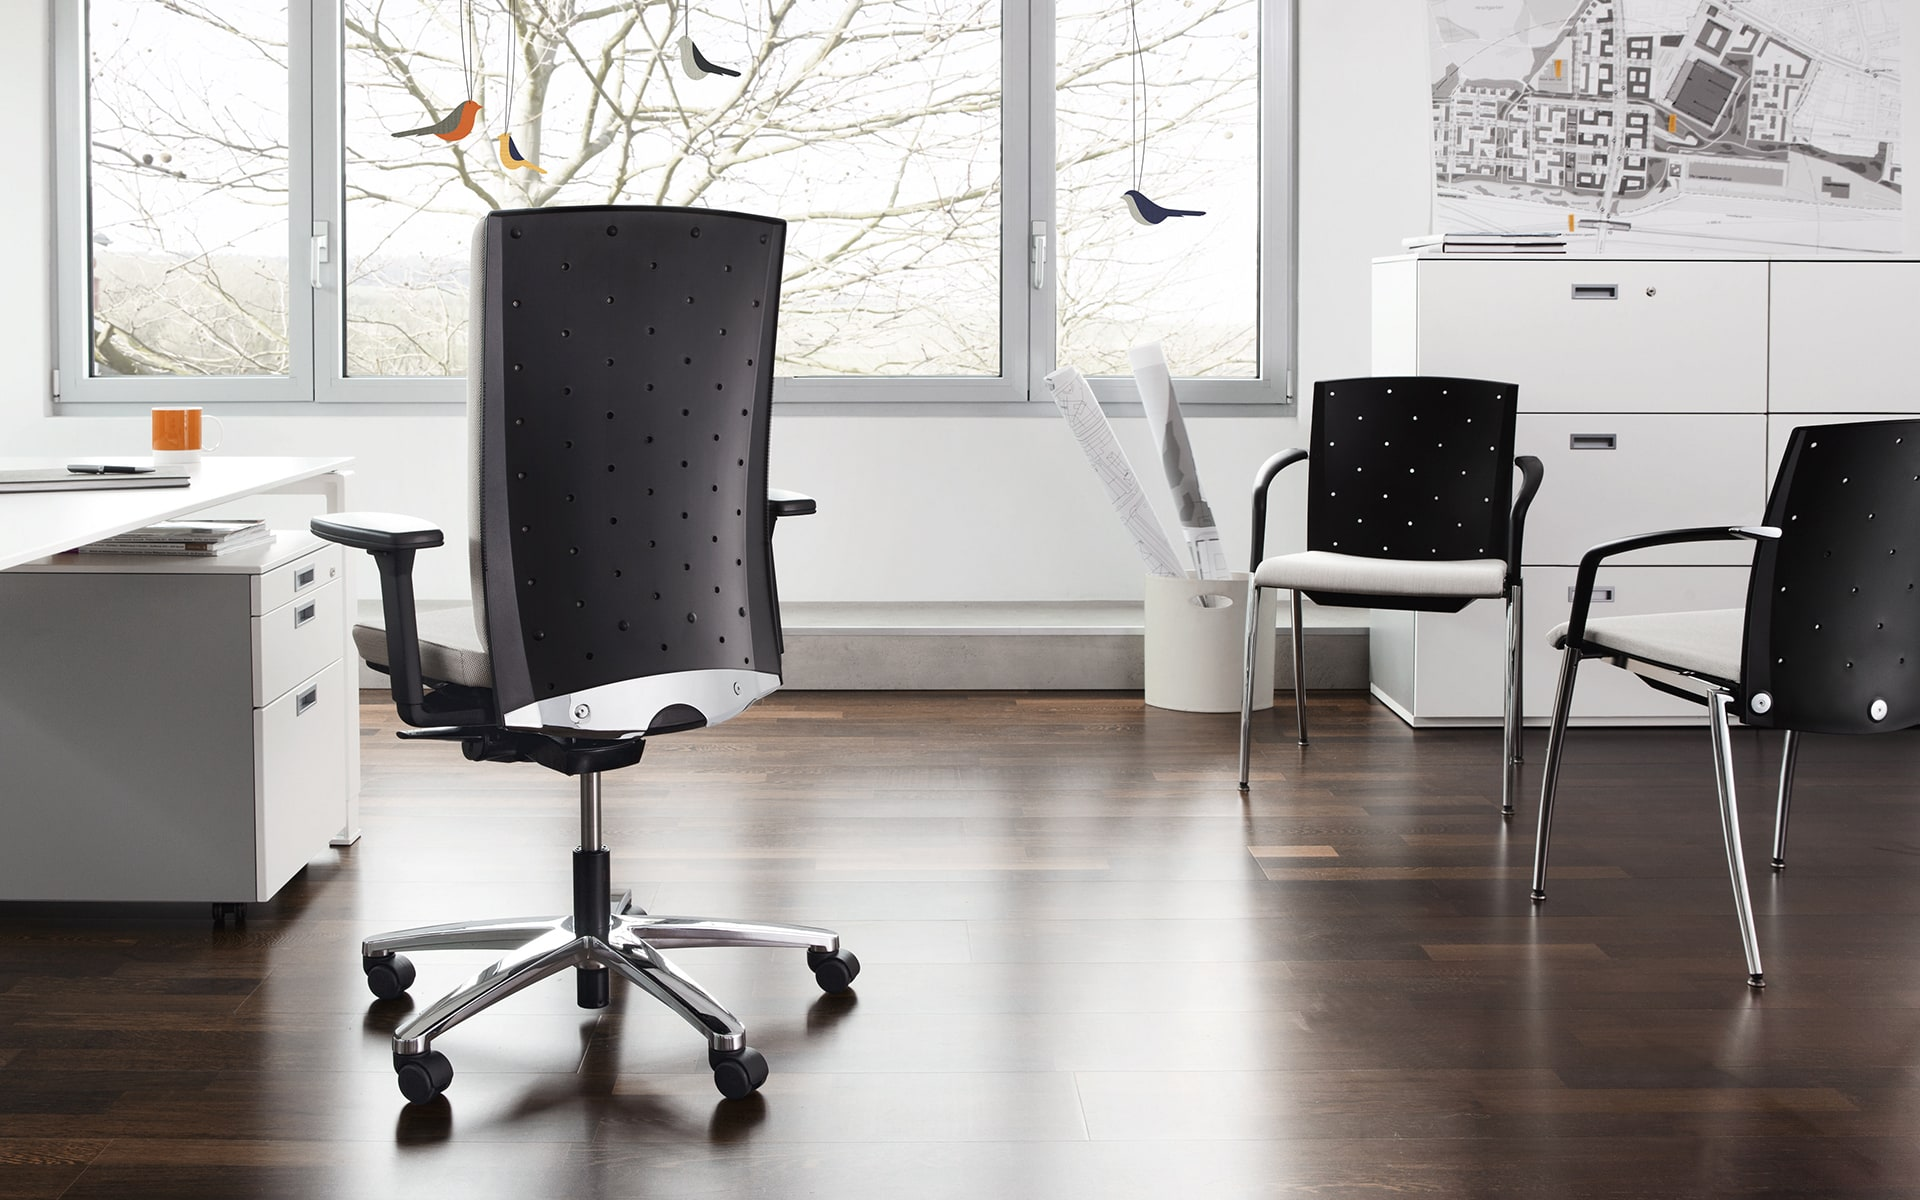 Various models of the König + Neurath Tensa office chair family by ITO Design in architecture office